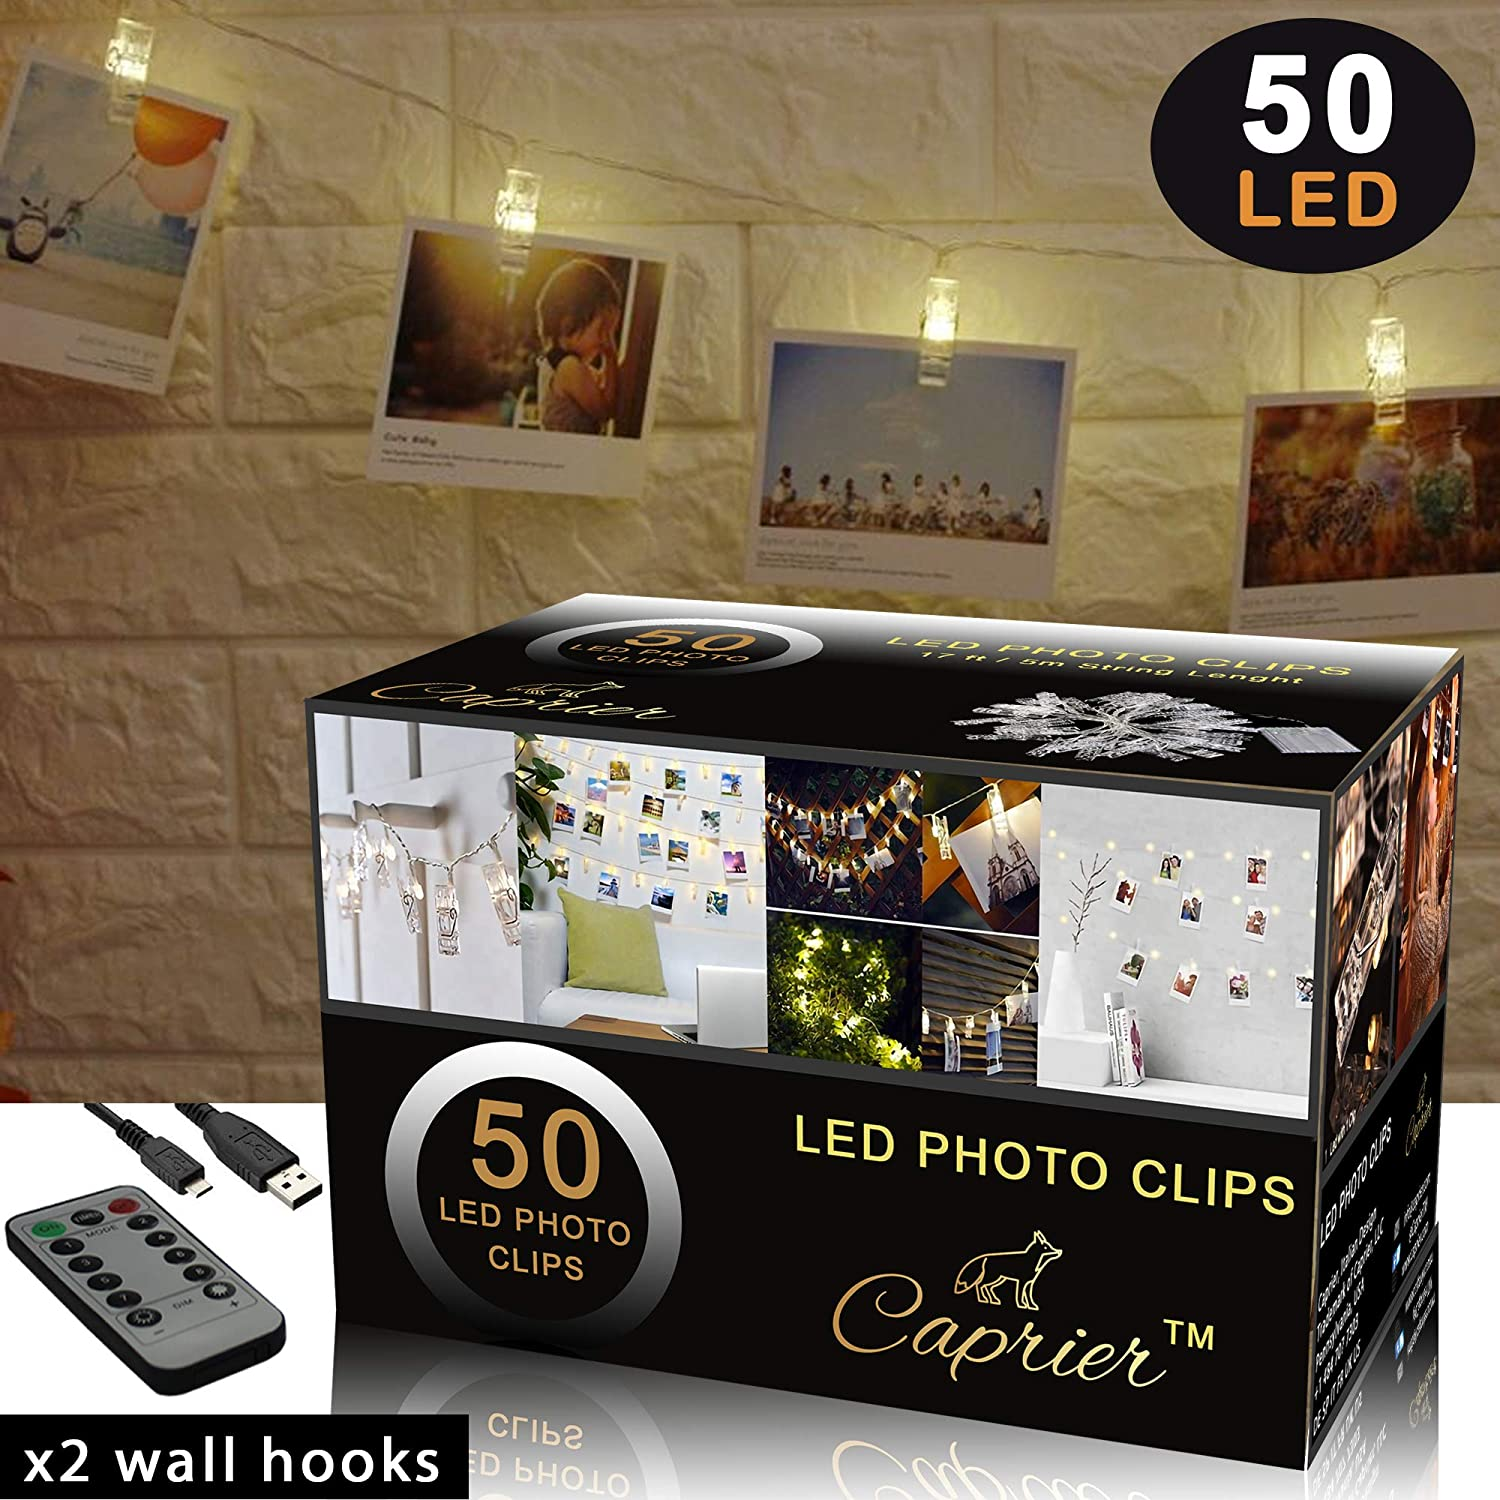 Caprier Luxury Photo Clips String Light, 50 LED Big Clips, Dimmable 8 Modes with Timer, USB and Battery Powered, Dorms Decor, Photo String with Clips Hanging Polaroid, Room Decoration for Teen Girl